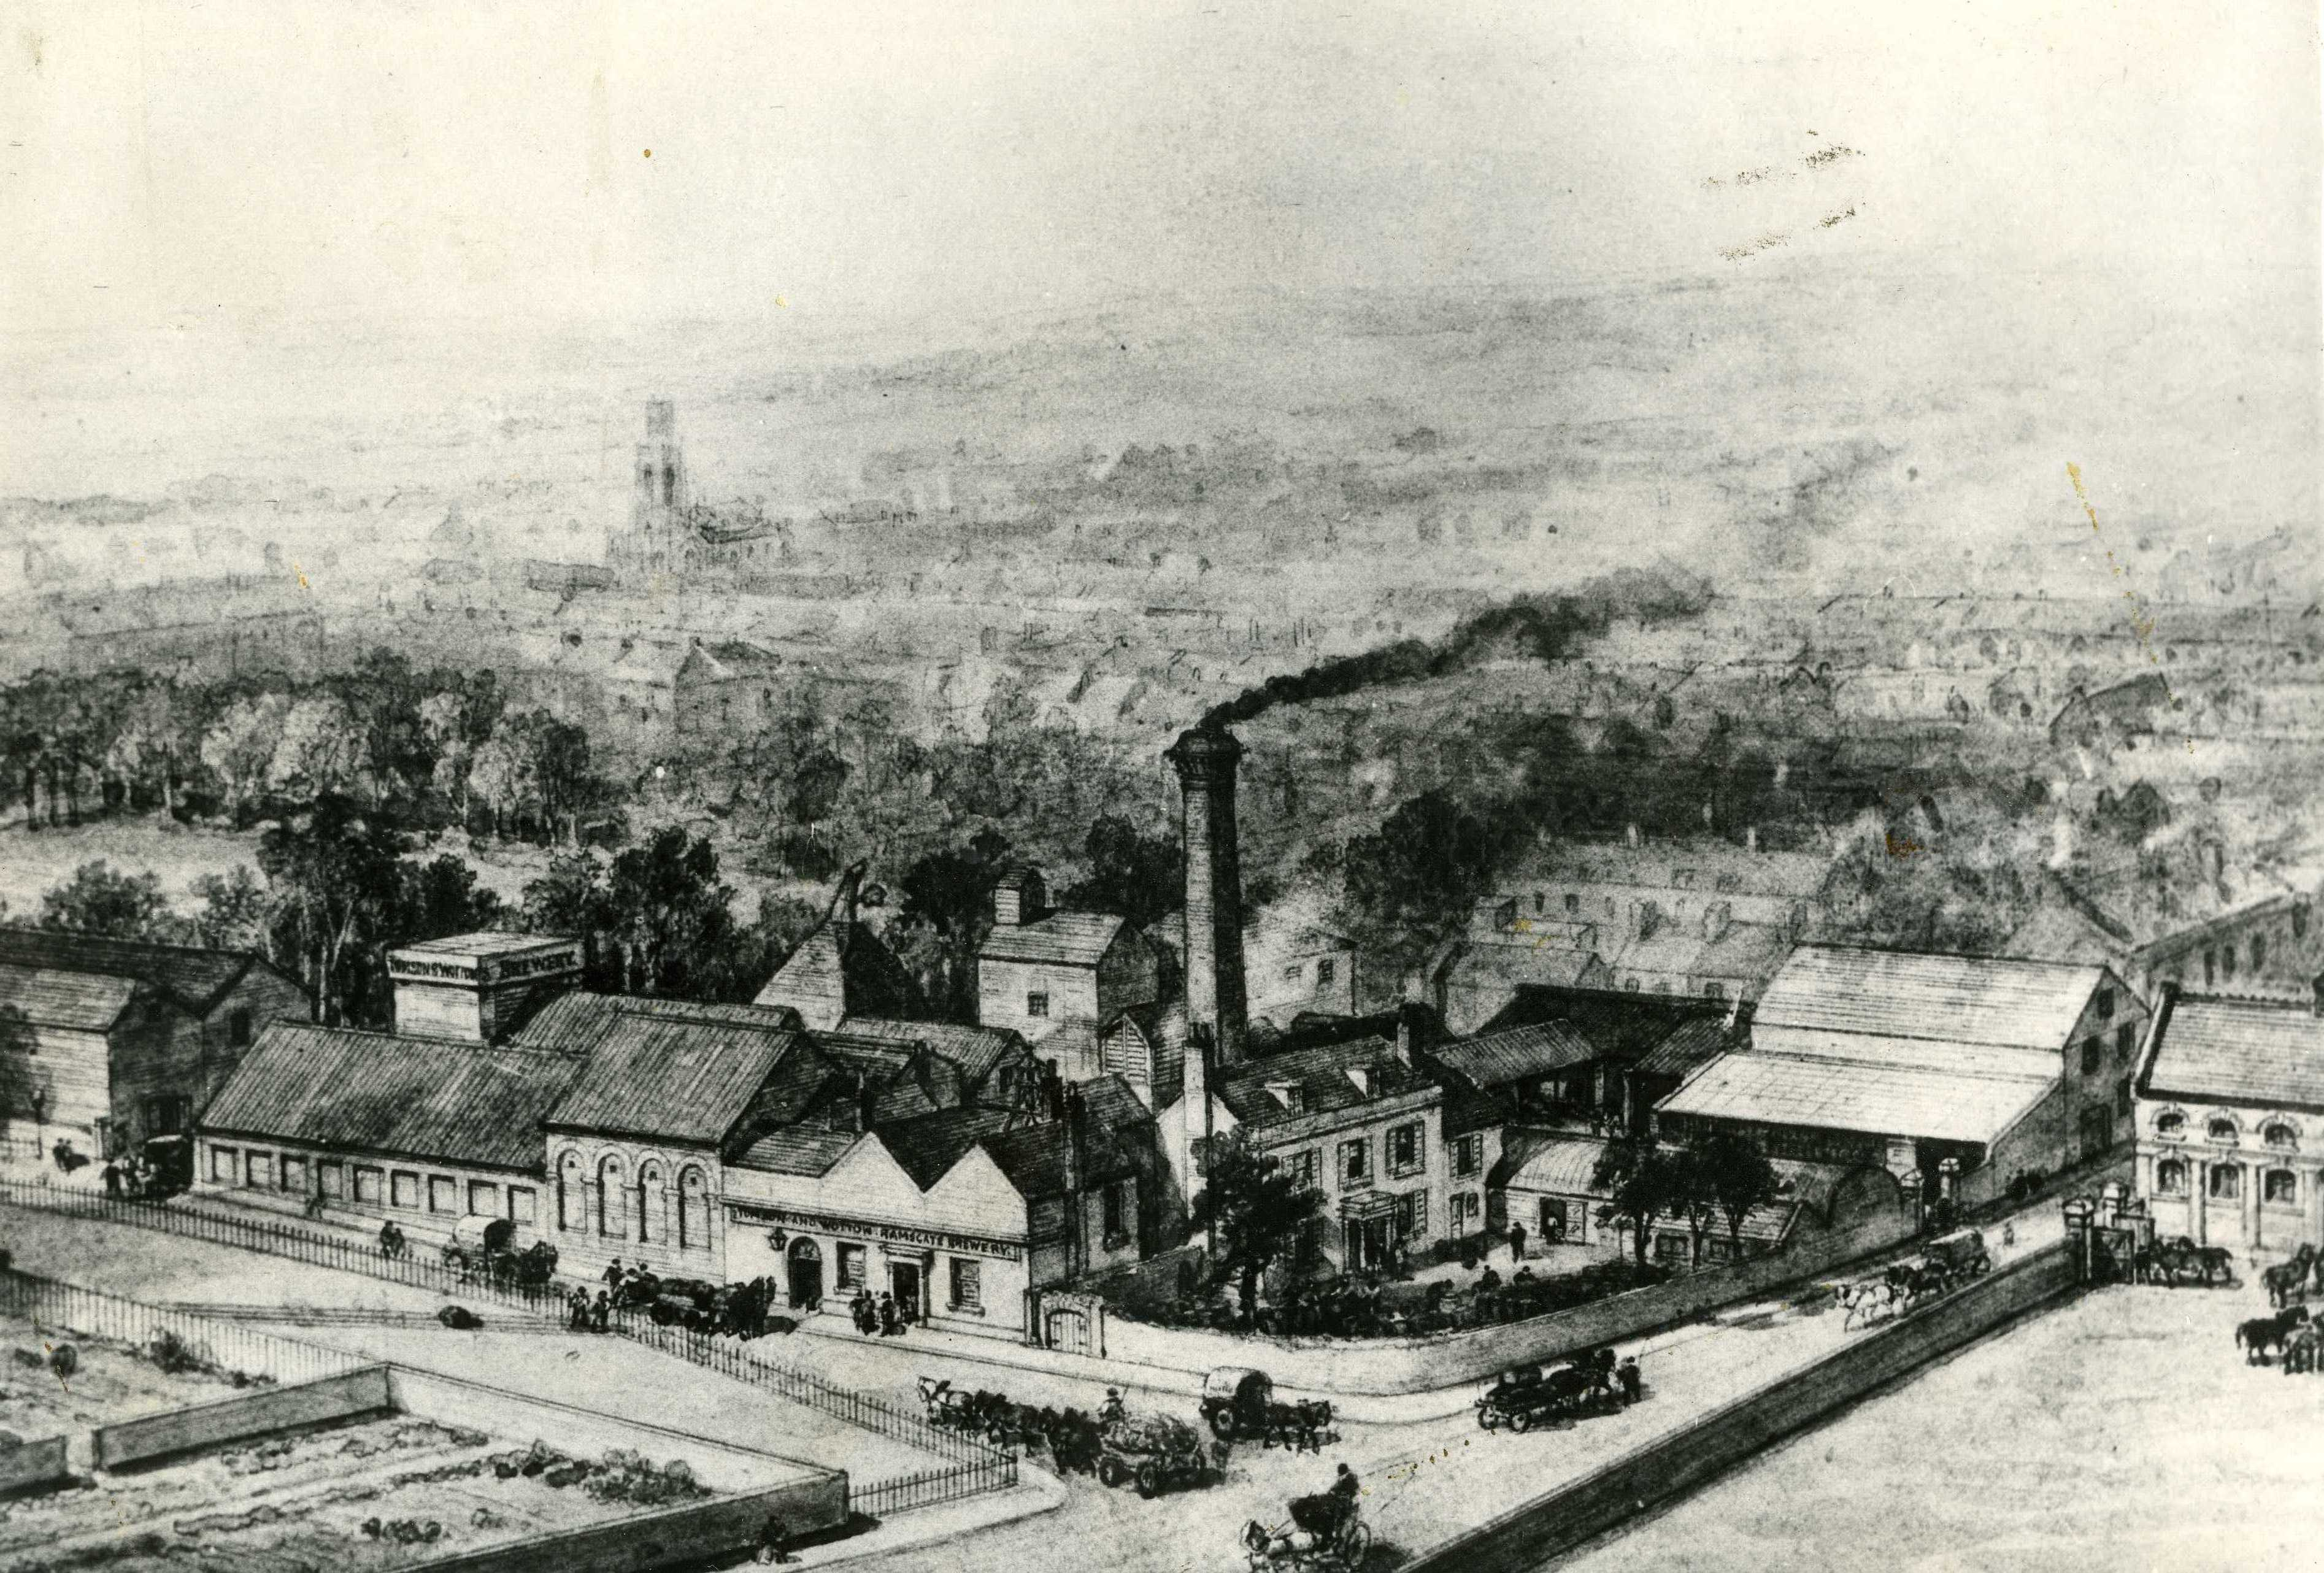 Tomson and Wotton Brewery